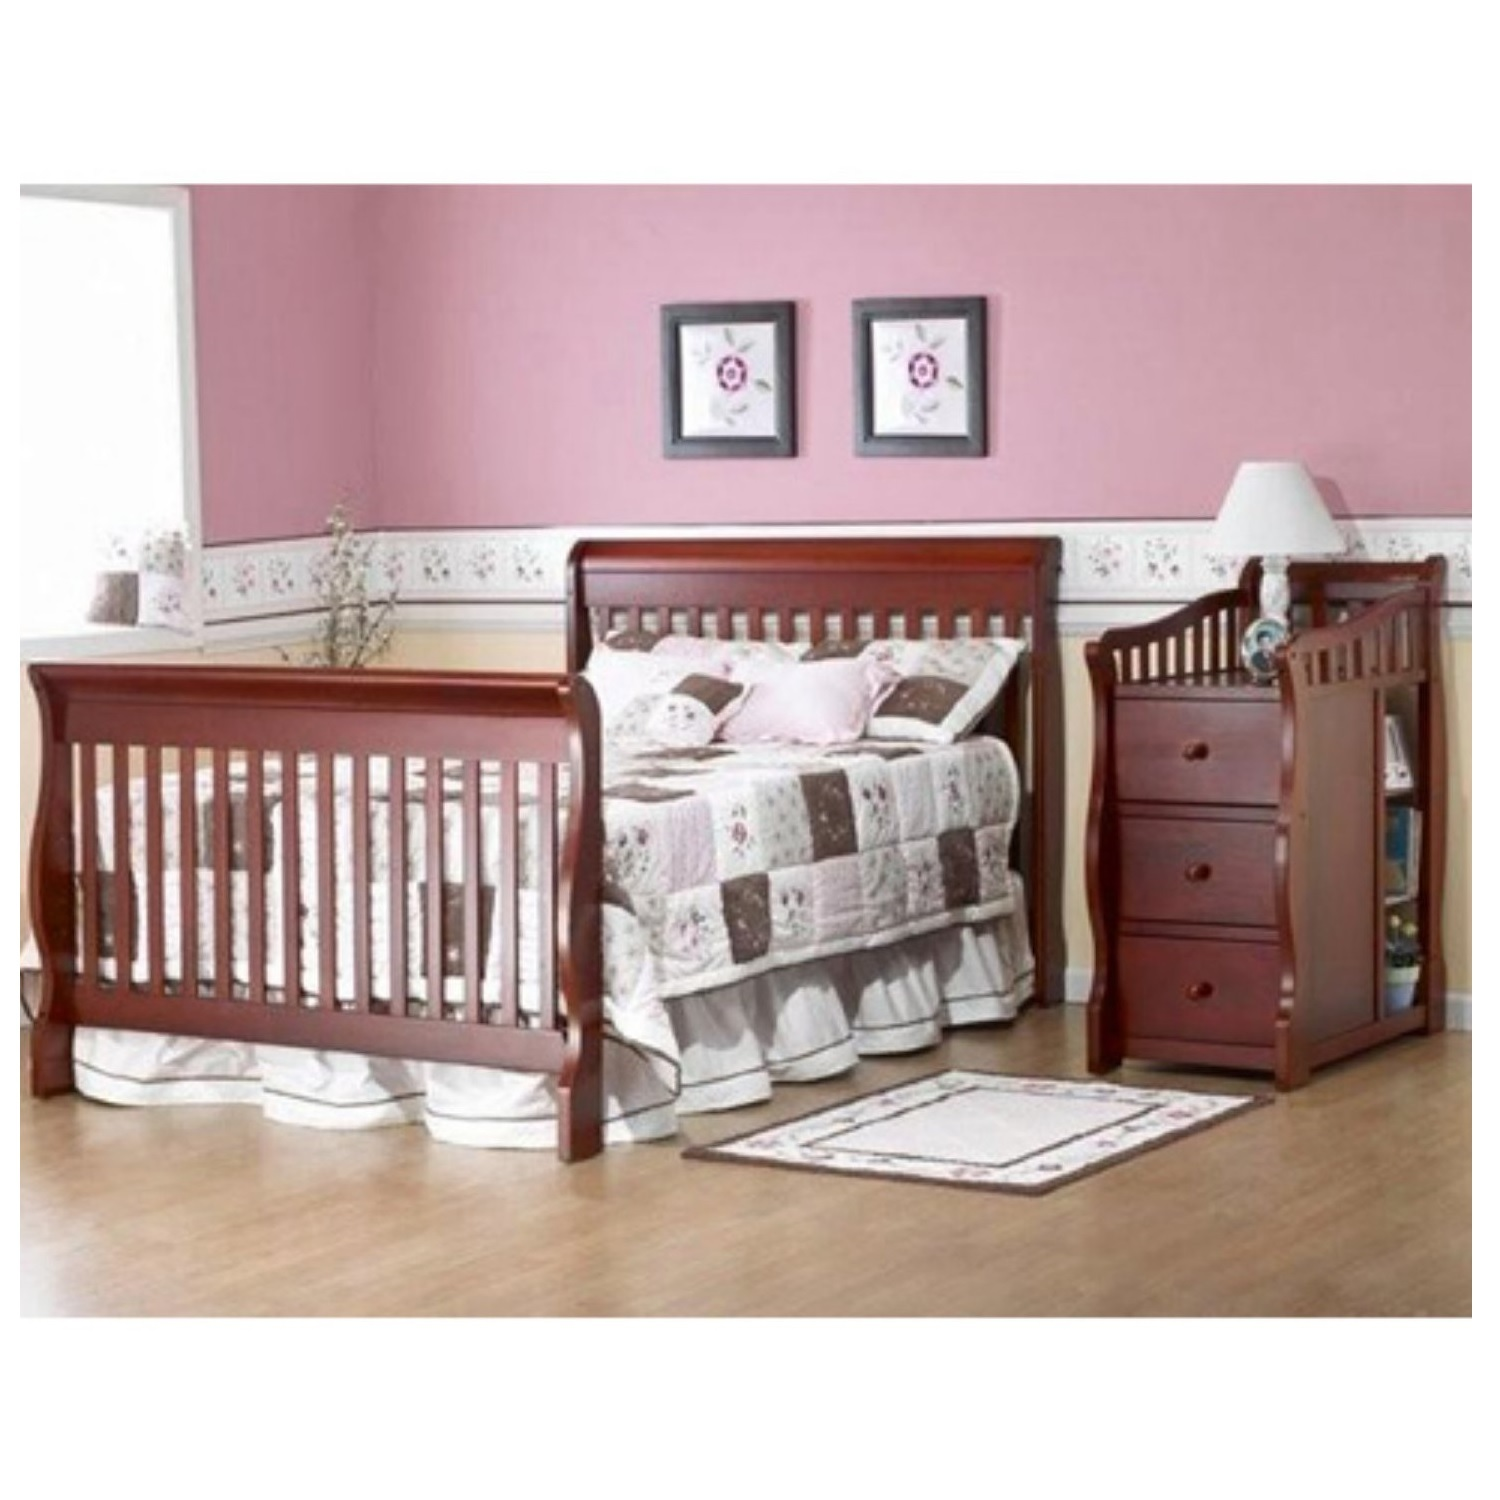 Convertible Baby Crib Changing Table Combo Nursery ...